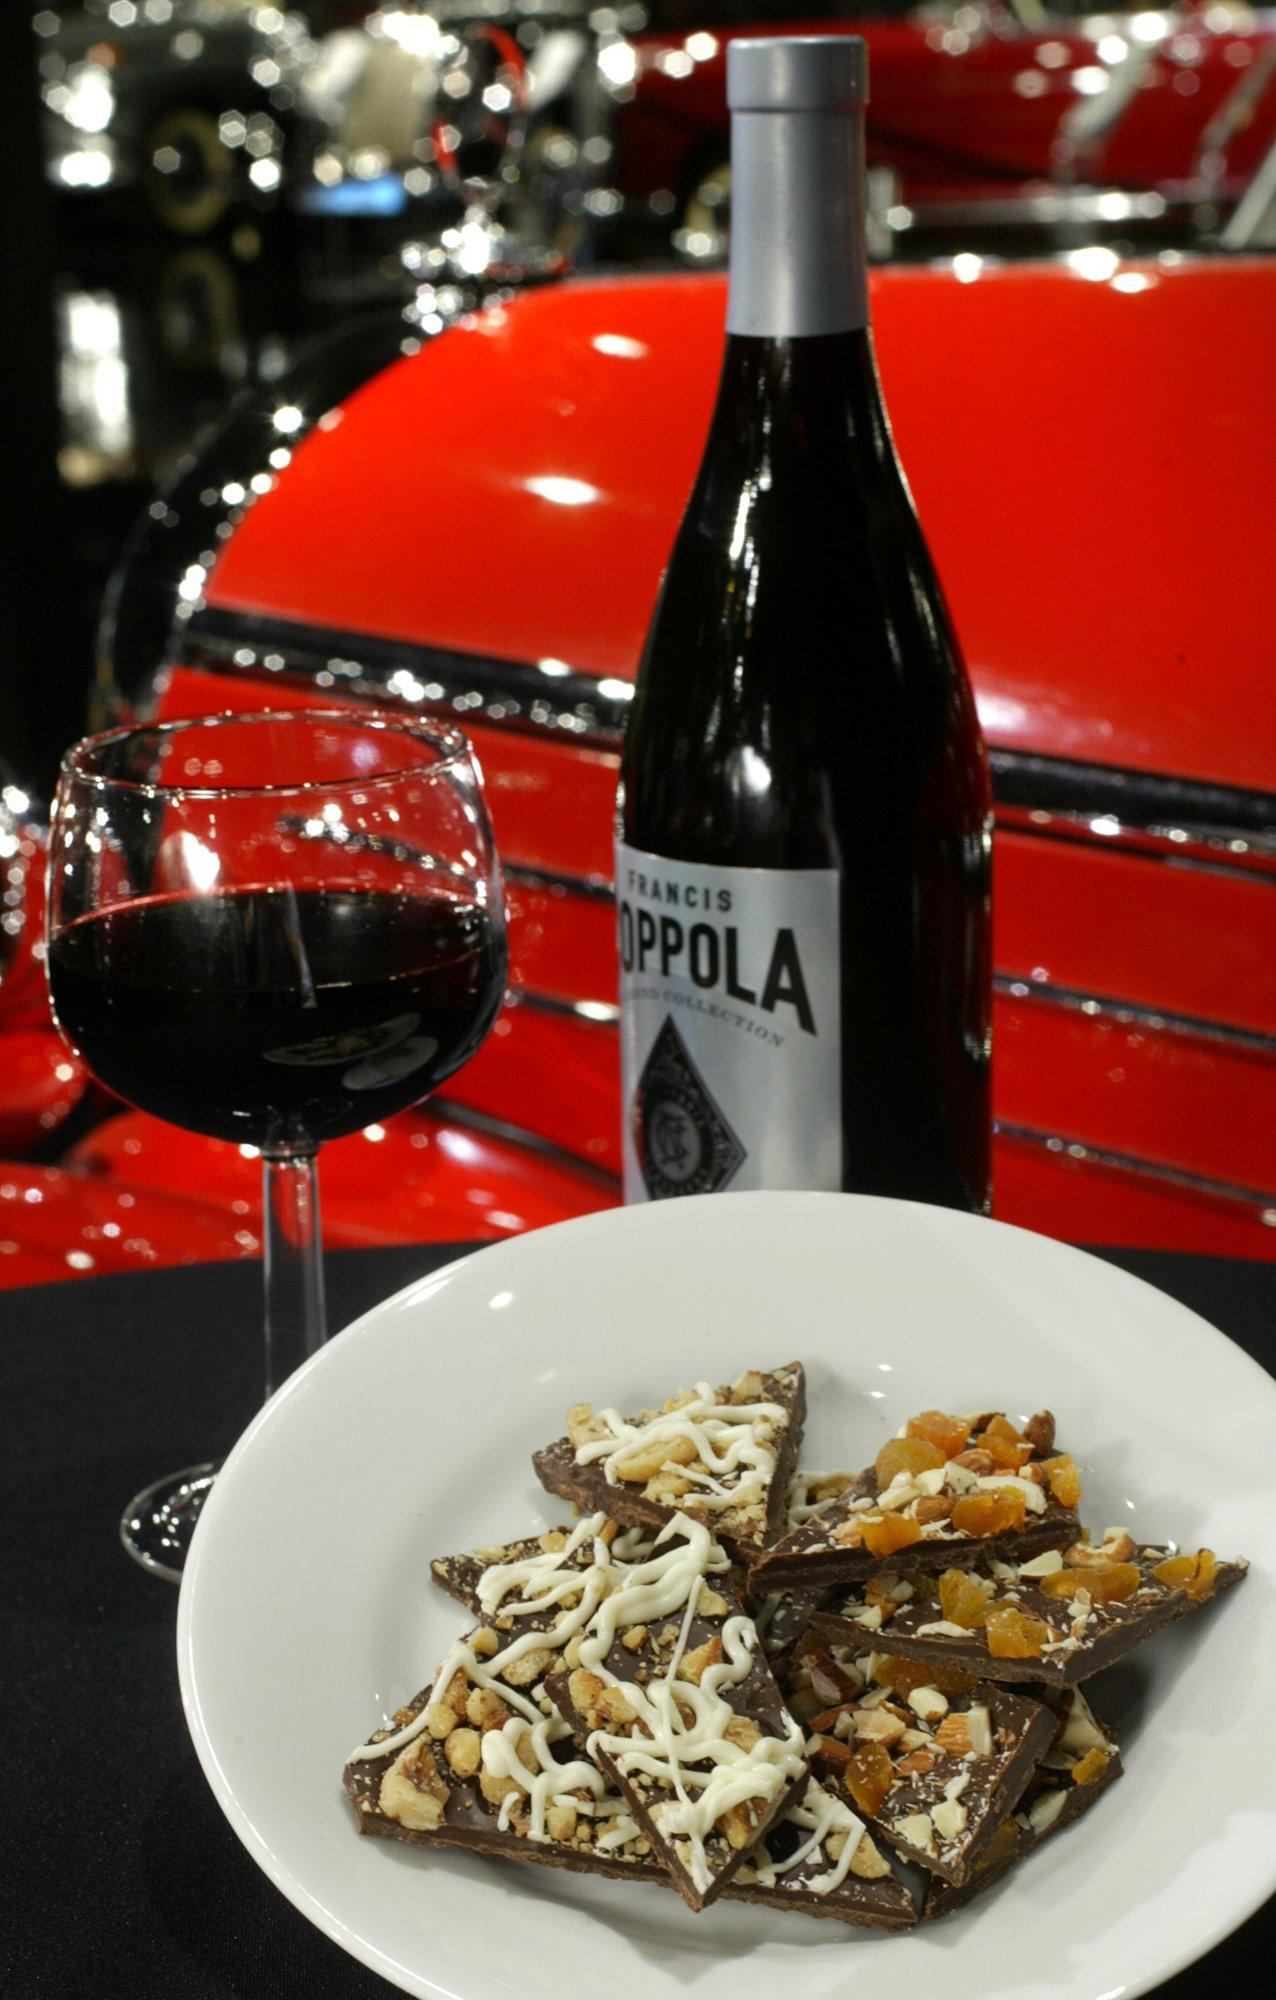 Double dark chocolate bark with nuts and red wine make for great brain food. (Karen Elshout/St. Louis Post-Dispatch/KRT)